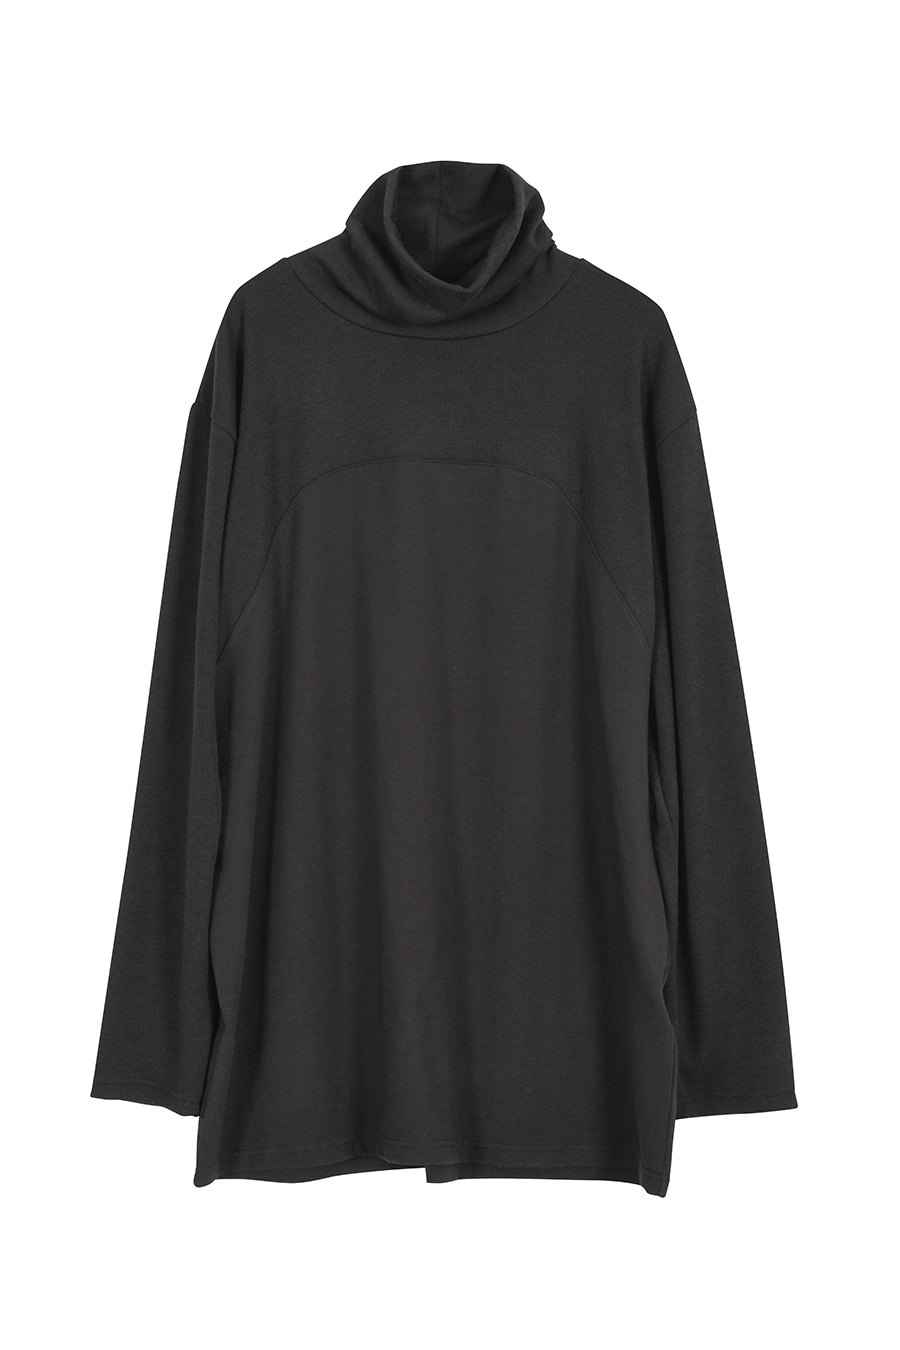 """The Pilgrim"" Double Fabrics Turtleneck - Black"